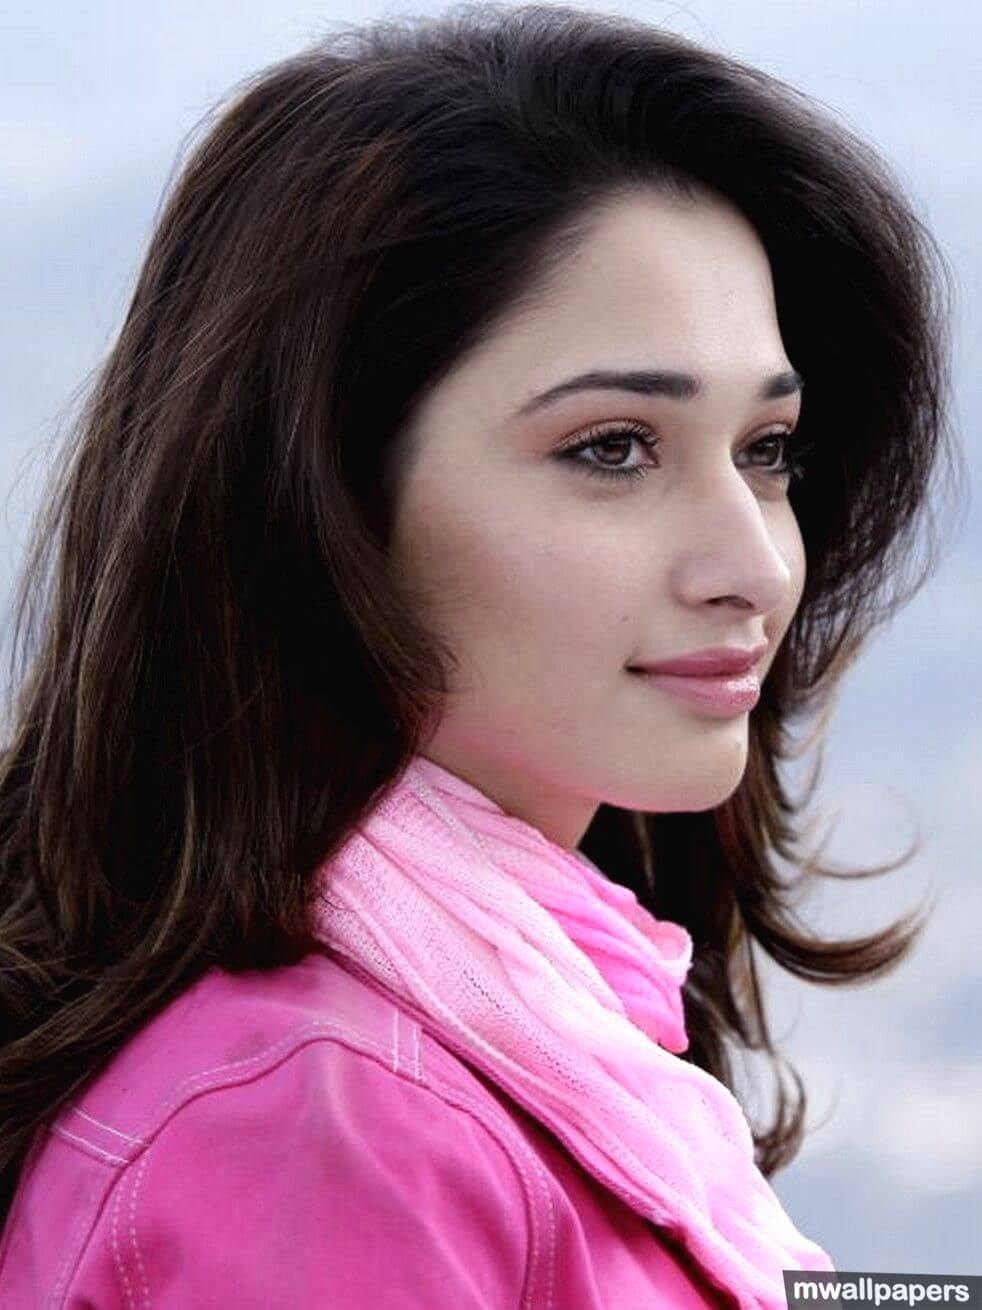 Tamannaah Bhatia Photos(images), Height, Biography, Movies, Date Of Birth, House, Details, Marriage, Boyfriend, Net Worth, Education, Instagram, Facebook, Twitter, Wiki, Imdb, Youtube (8)